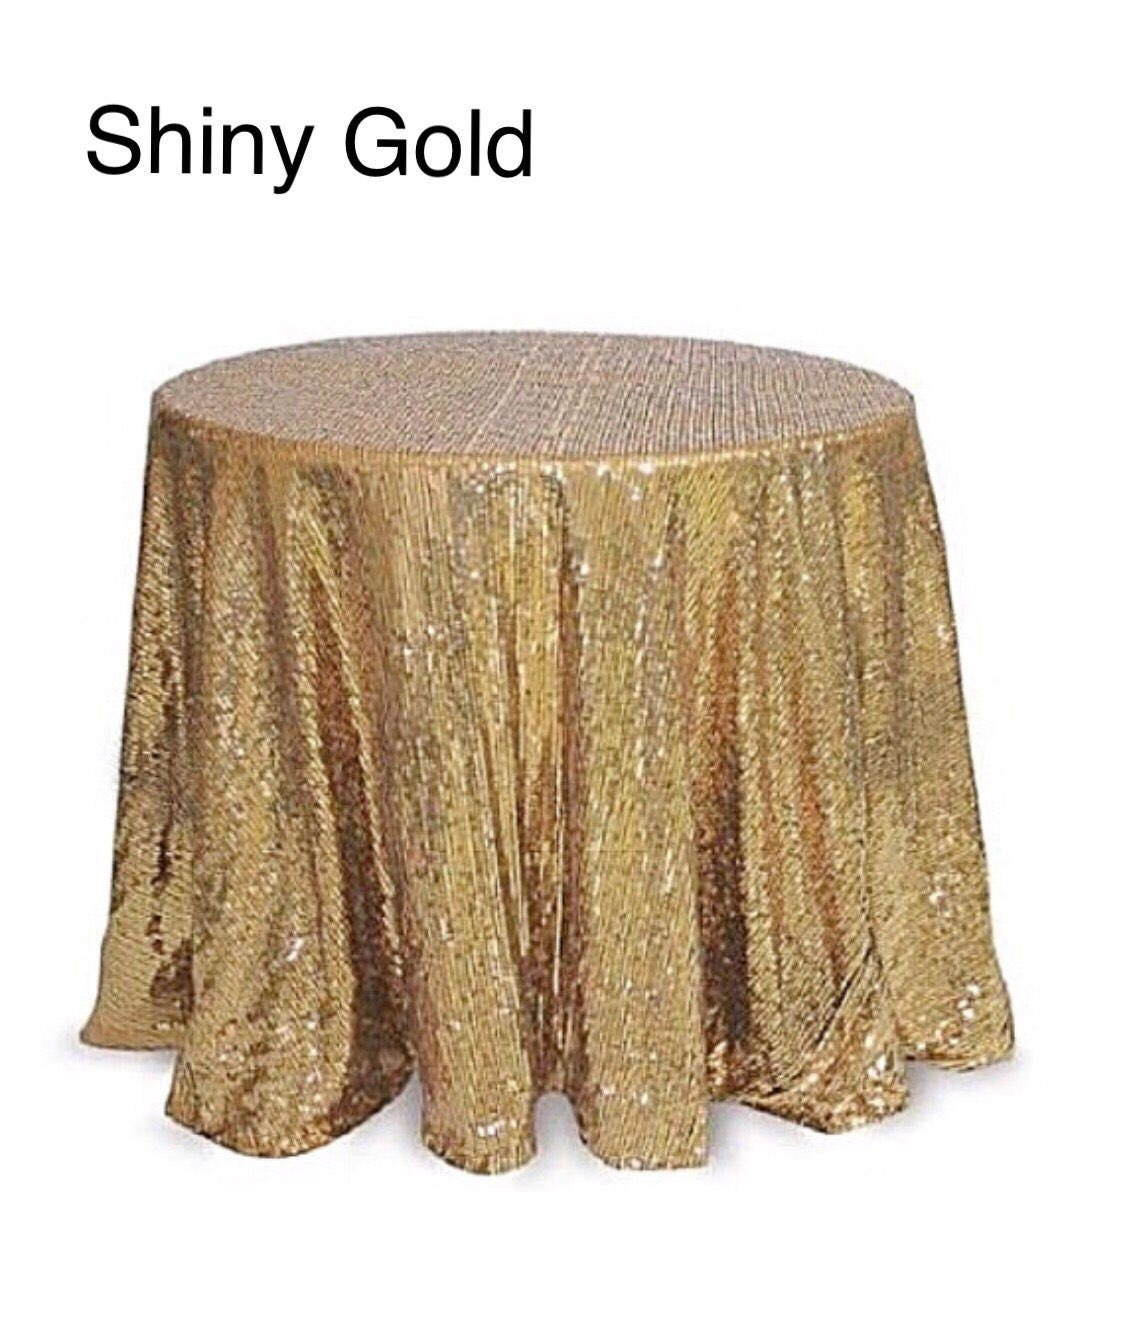 Gold Sequin Tablecloth, Table Runner, Table Overlay. Wedding Tablecloth,  Cake Table, Baby Shower, Sequence, Wedding Decorations, Party